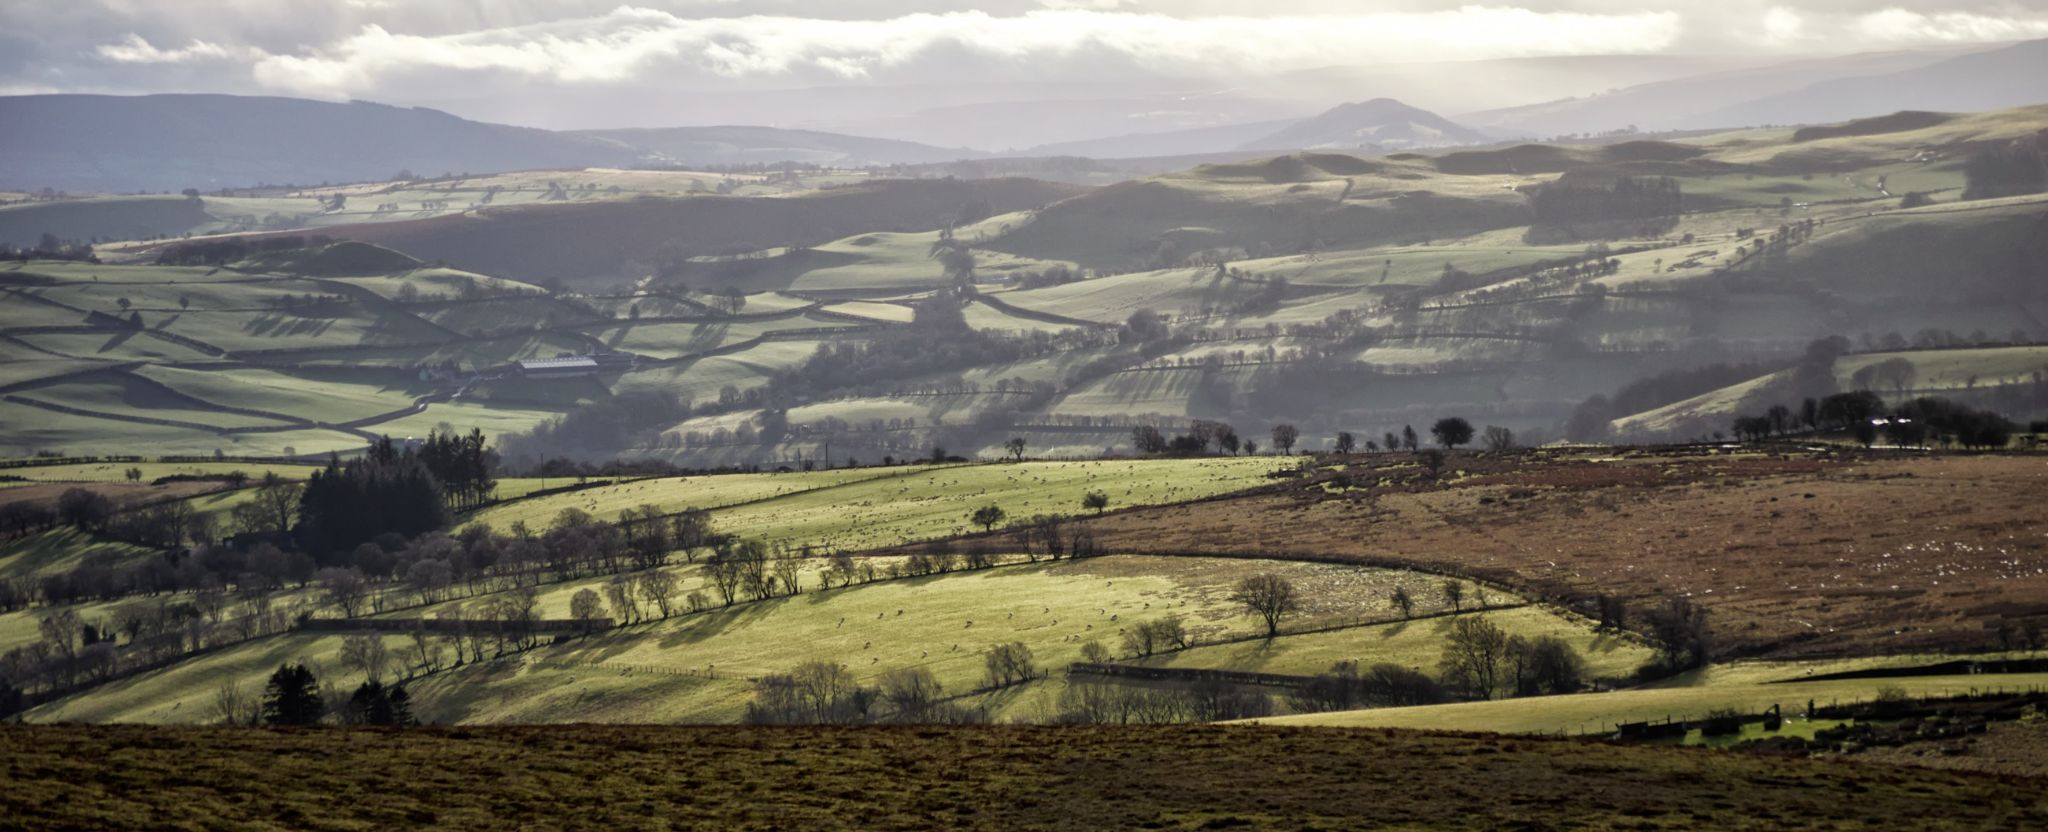 Towards the Brecon Beacons by Dominic Lemoine Photography